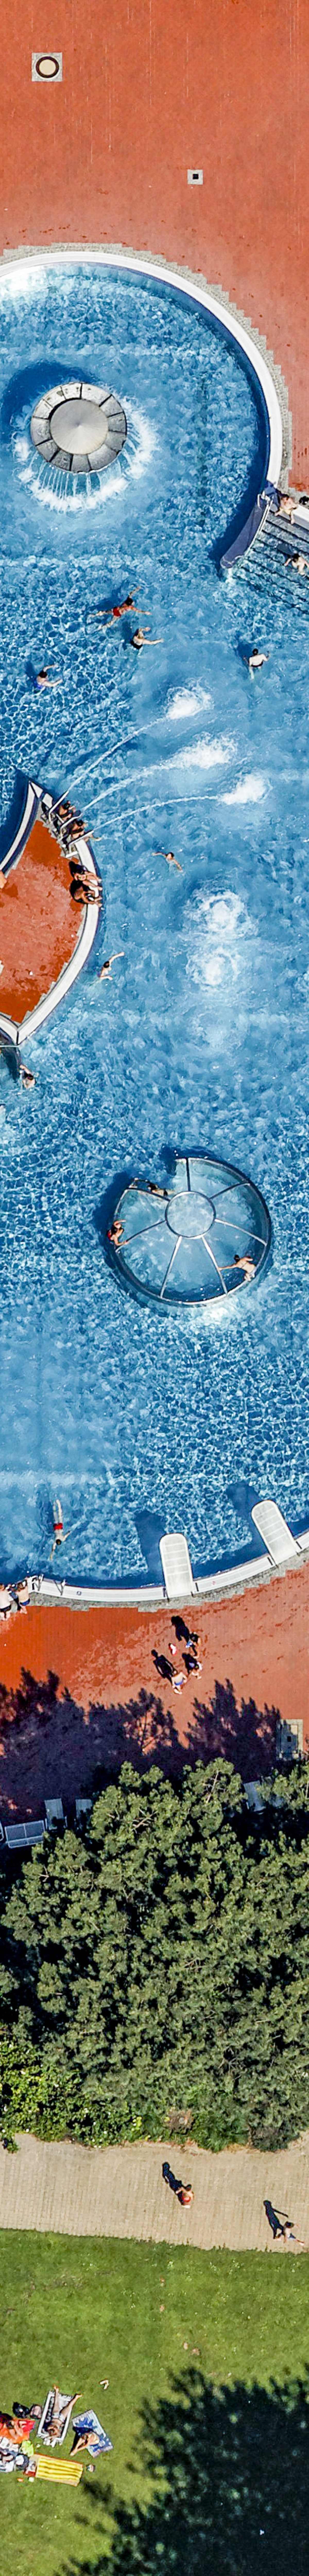 Aerial view of the Westbad waterpark in Regensburg - Klaus Leidorf Aerial Photography